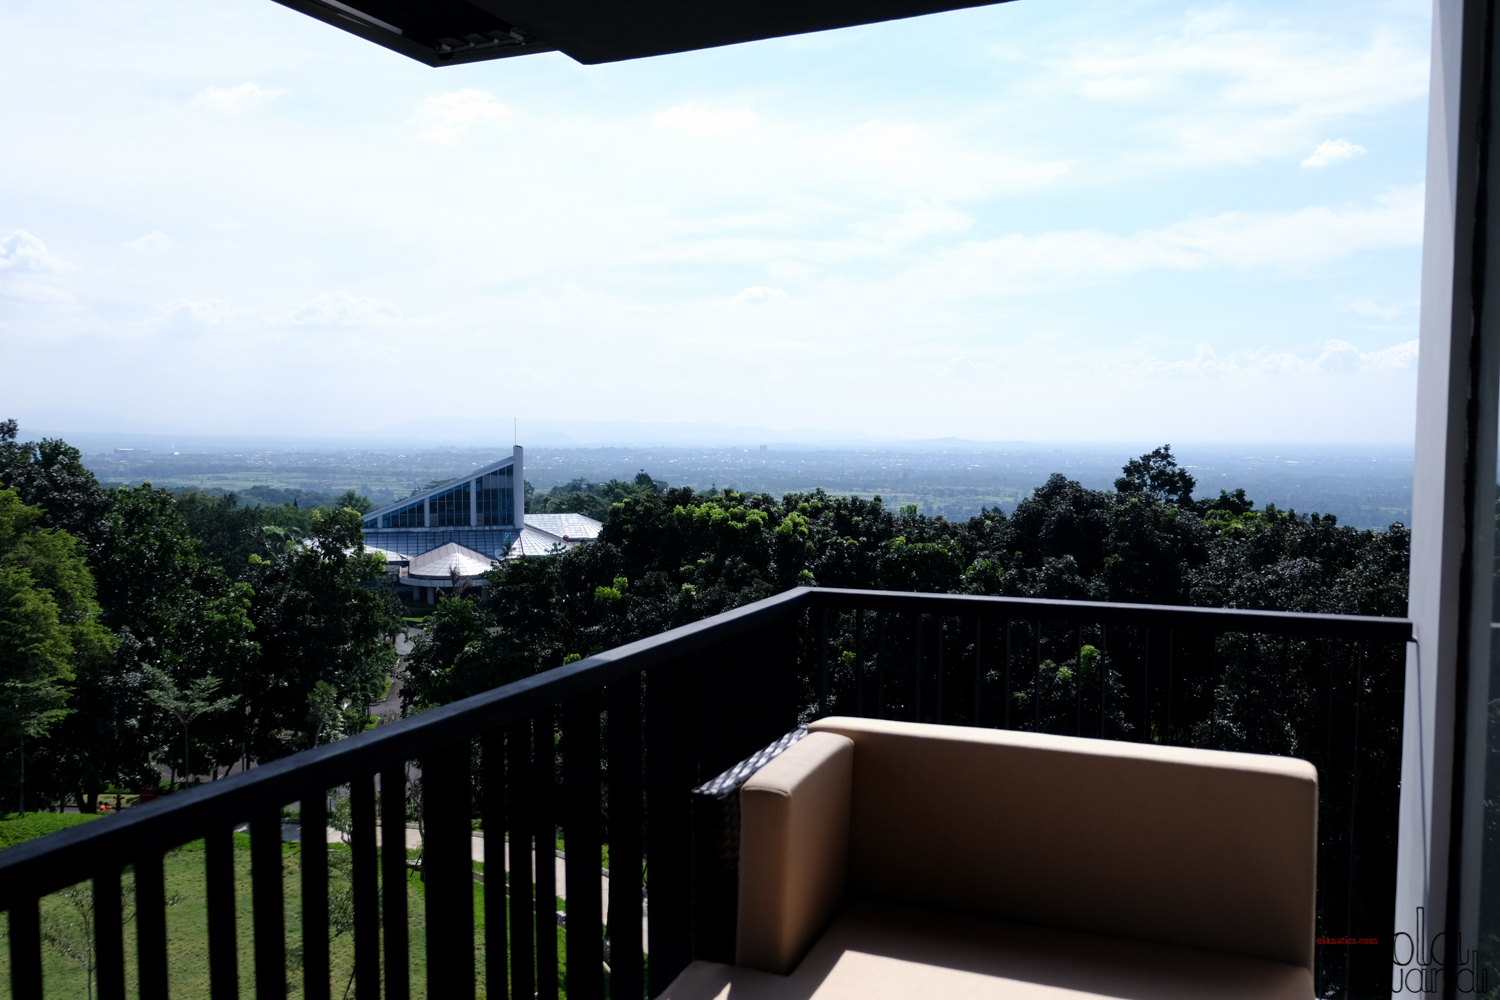 royal-tulip-6 Family Getaway: Royal Tulip Gunung Geulis Resort & Golf Bogor